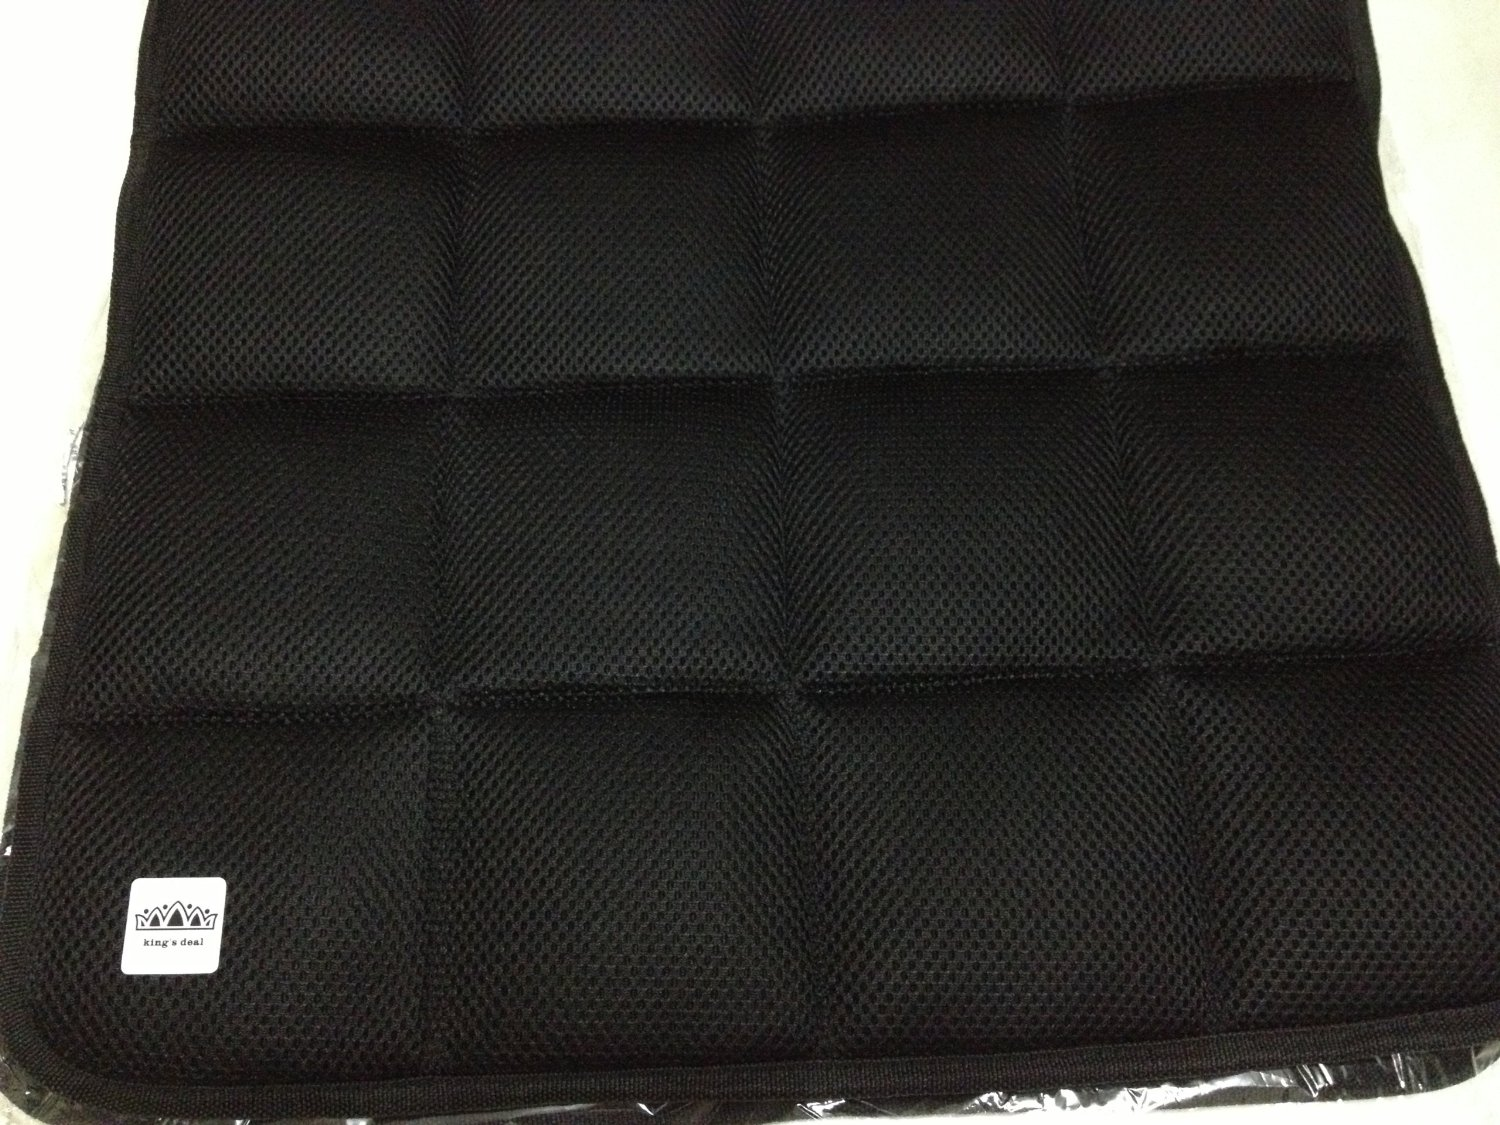 Bamboo Charcoal Breathable Seat Cushion for Office Car Chair Cushion Pad Mat